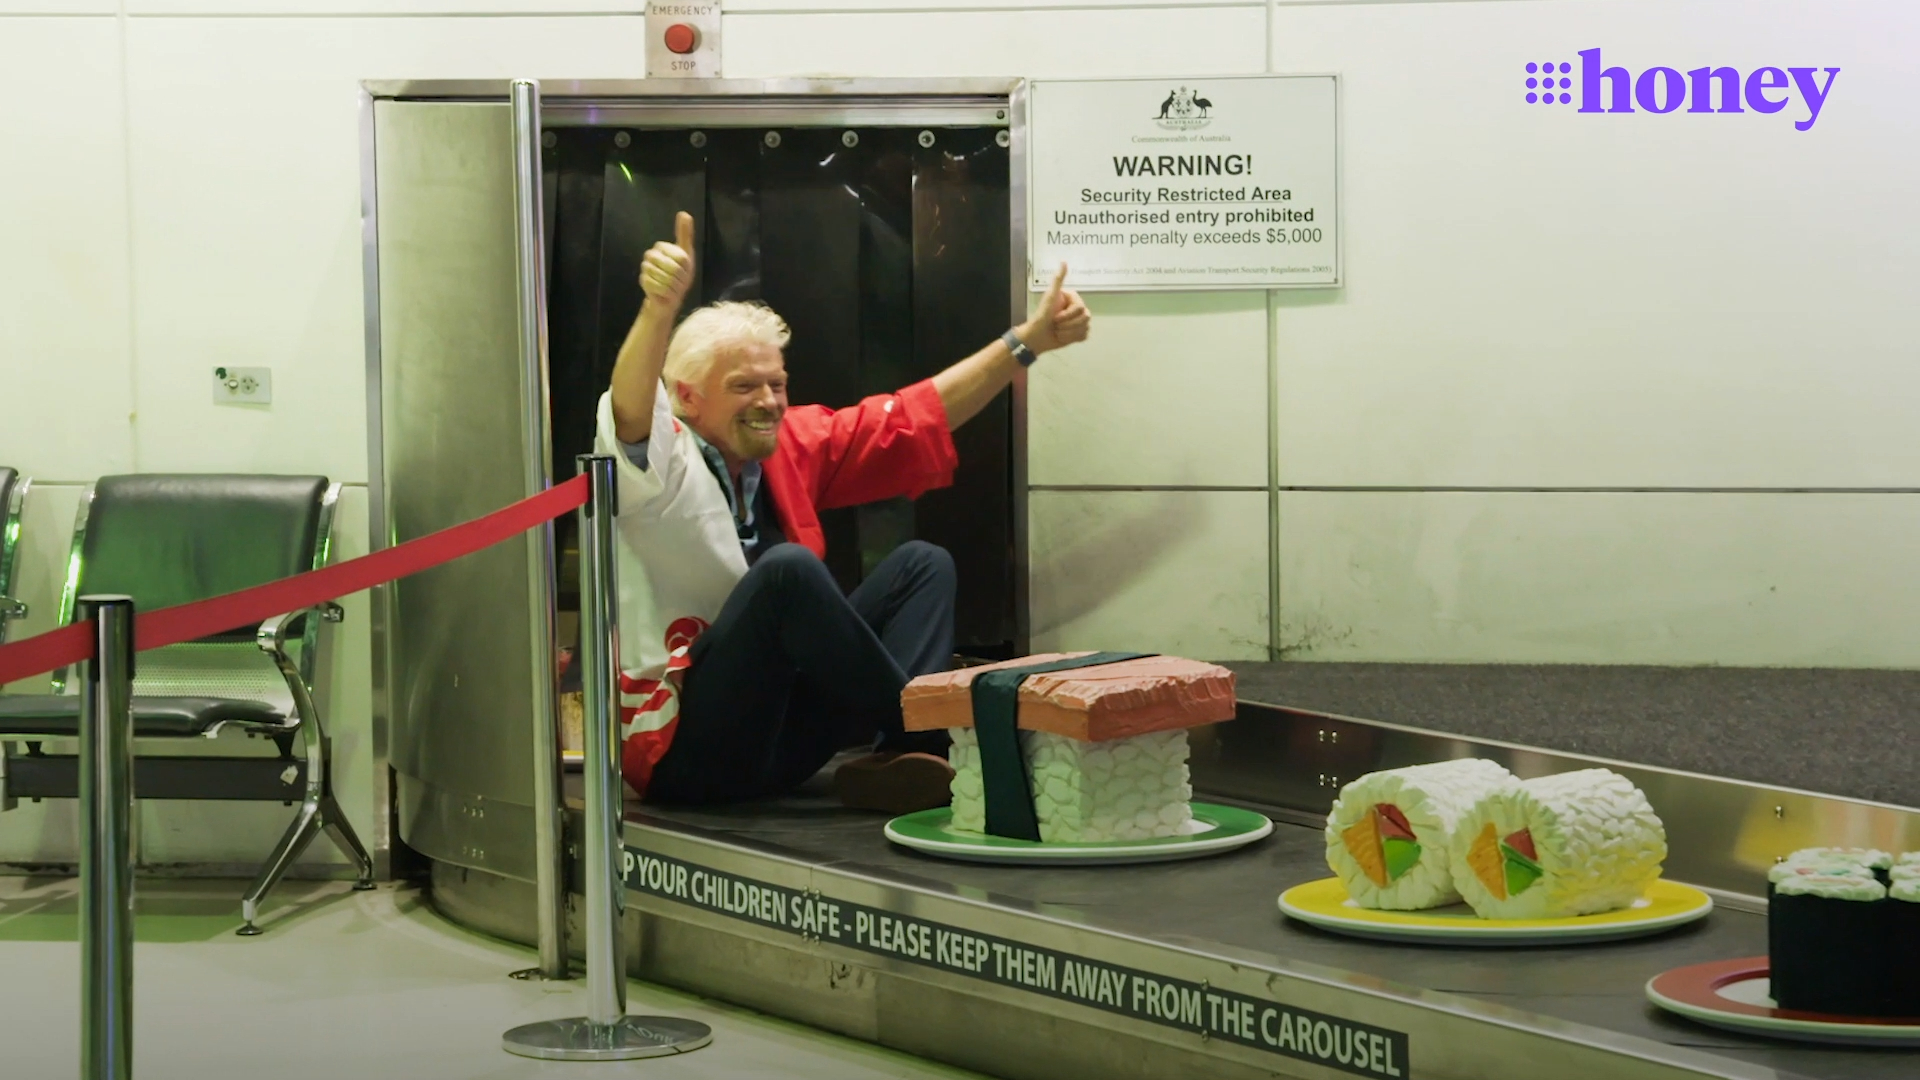 Sir Richard Branson surprises travellers in airport stunt